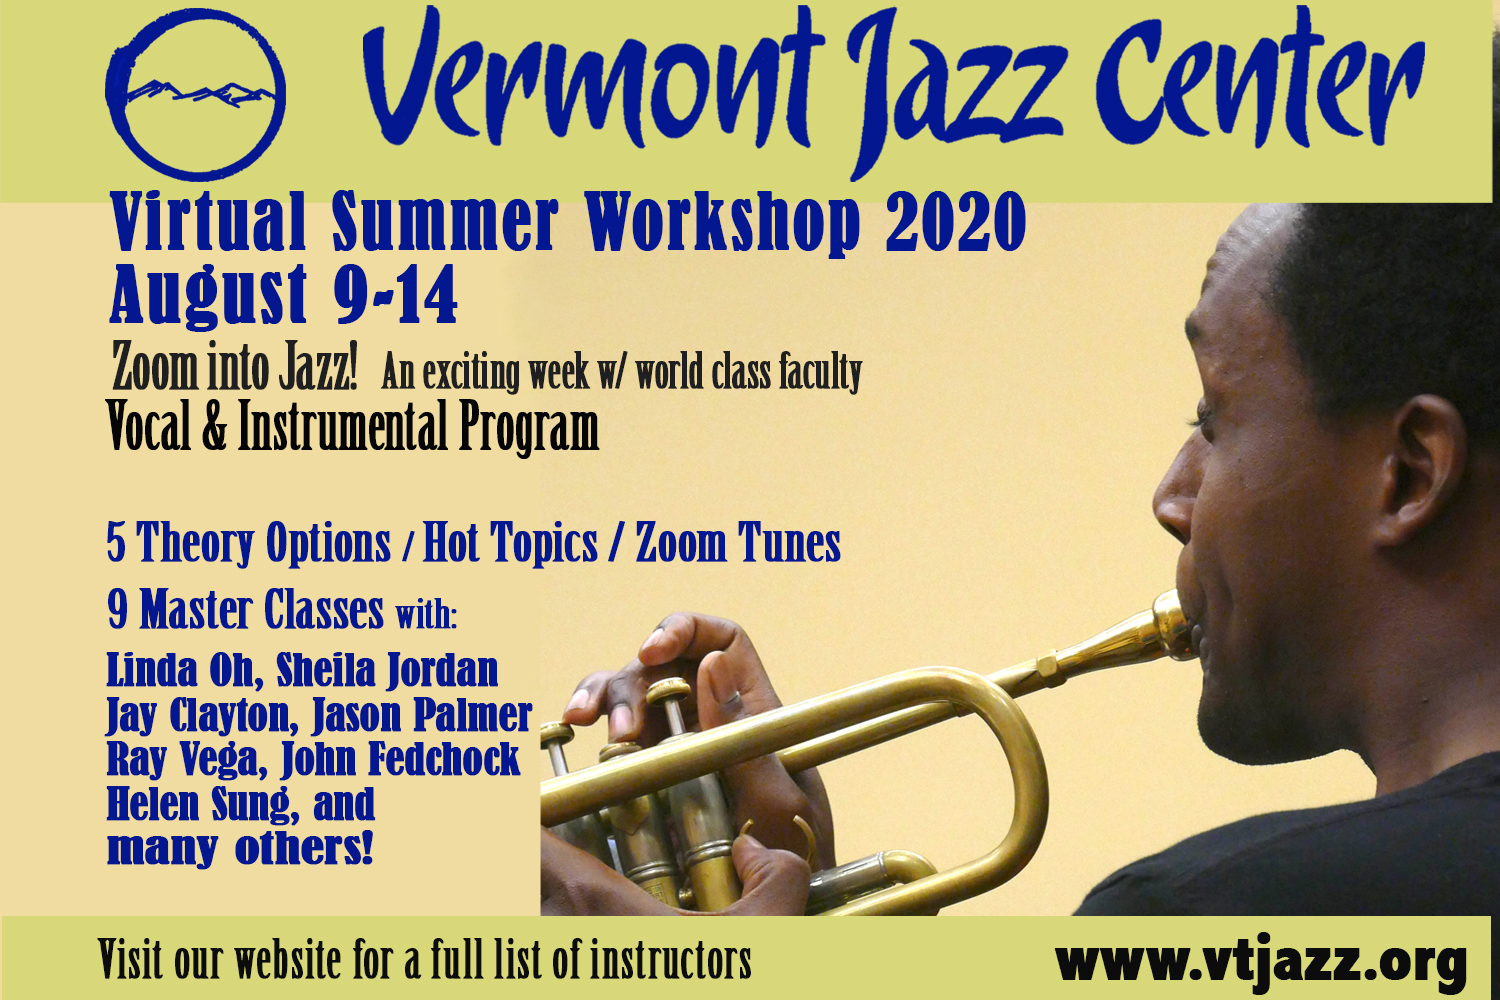 Vermont Jazz Center Summer Workshop 2020